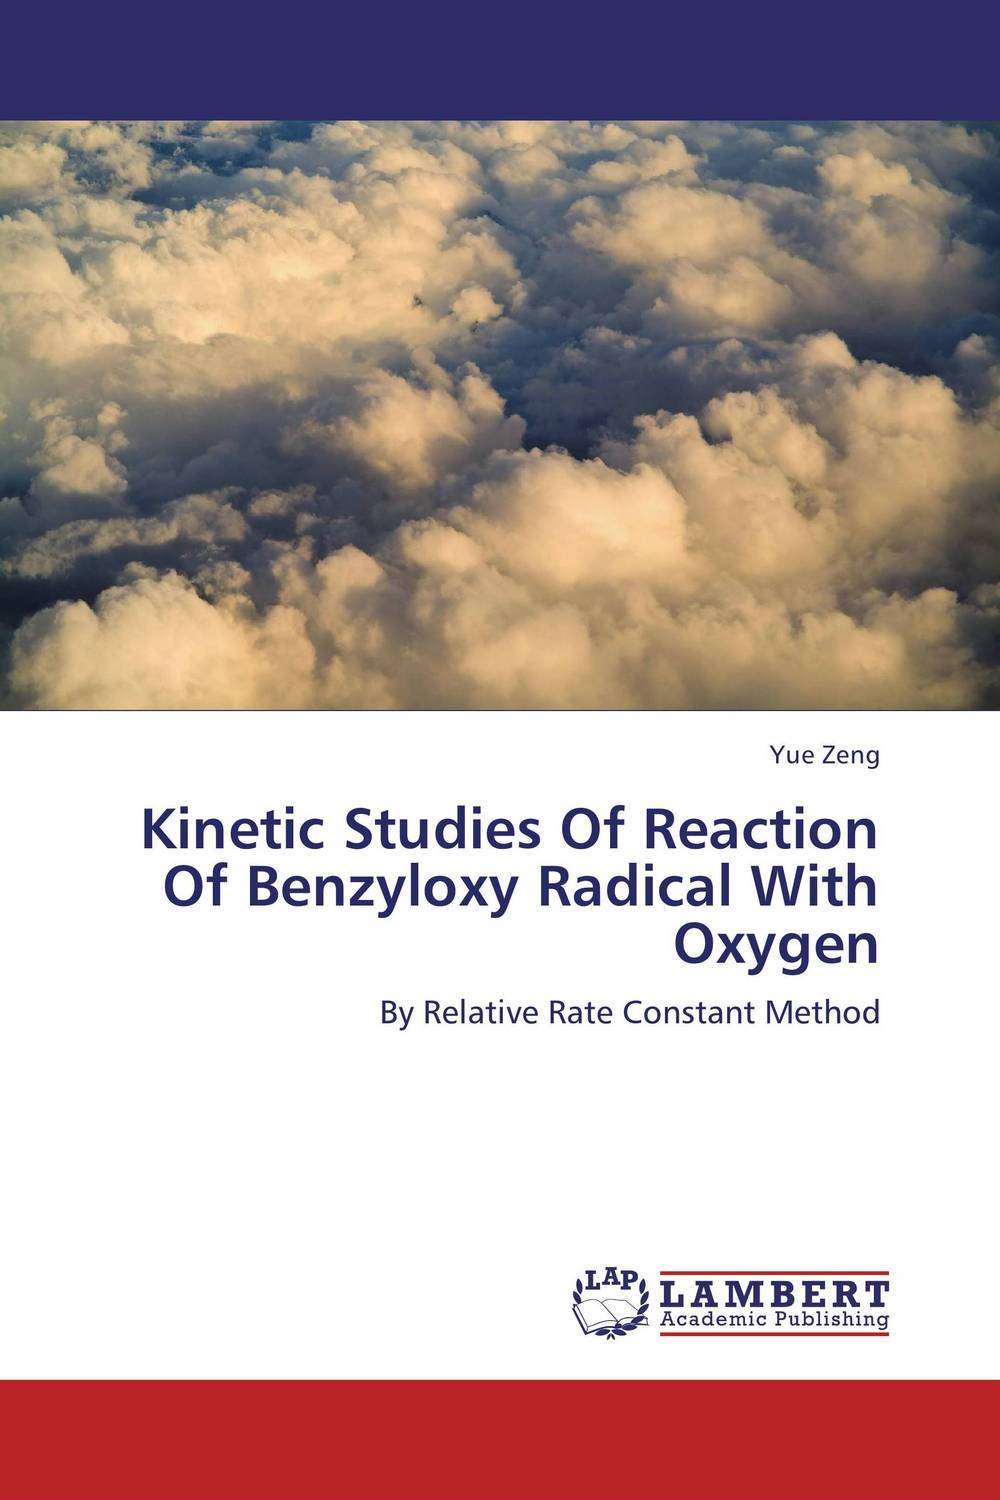 Kinetic Studies Of Reaction Of Benzyloxy Radical With Oxygen radicals